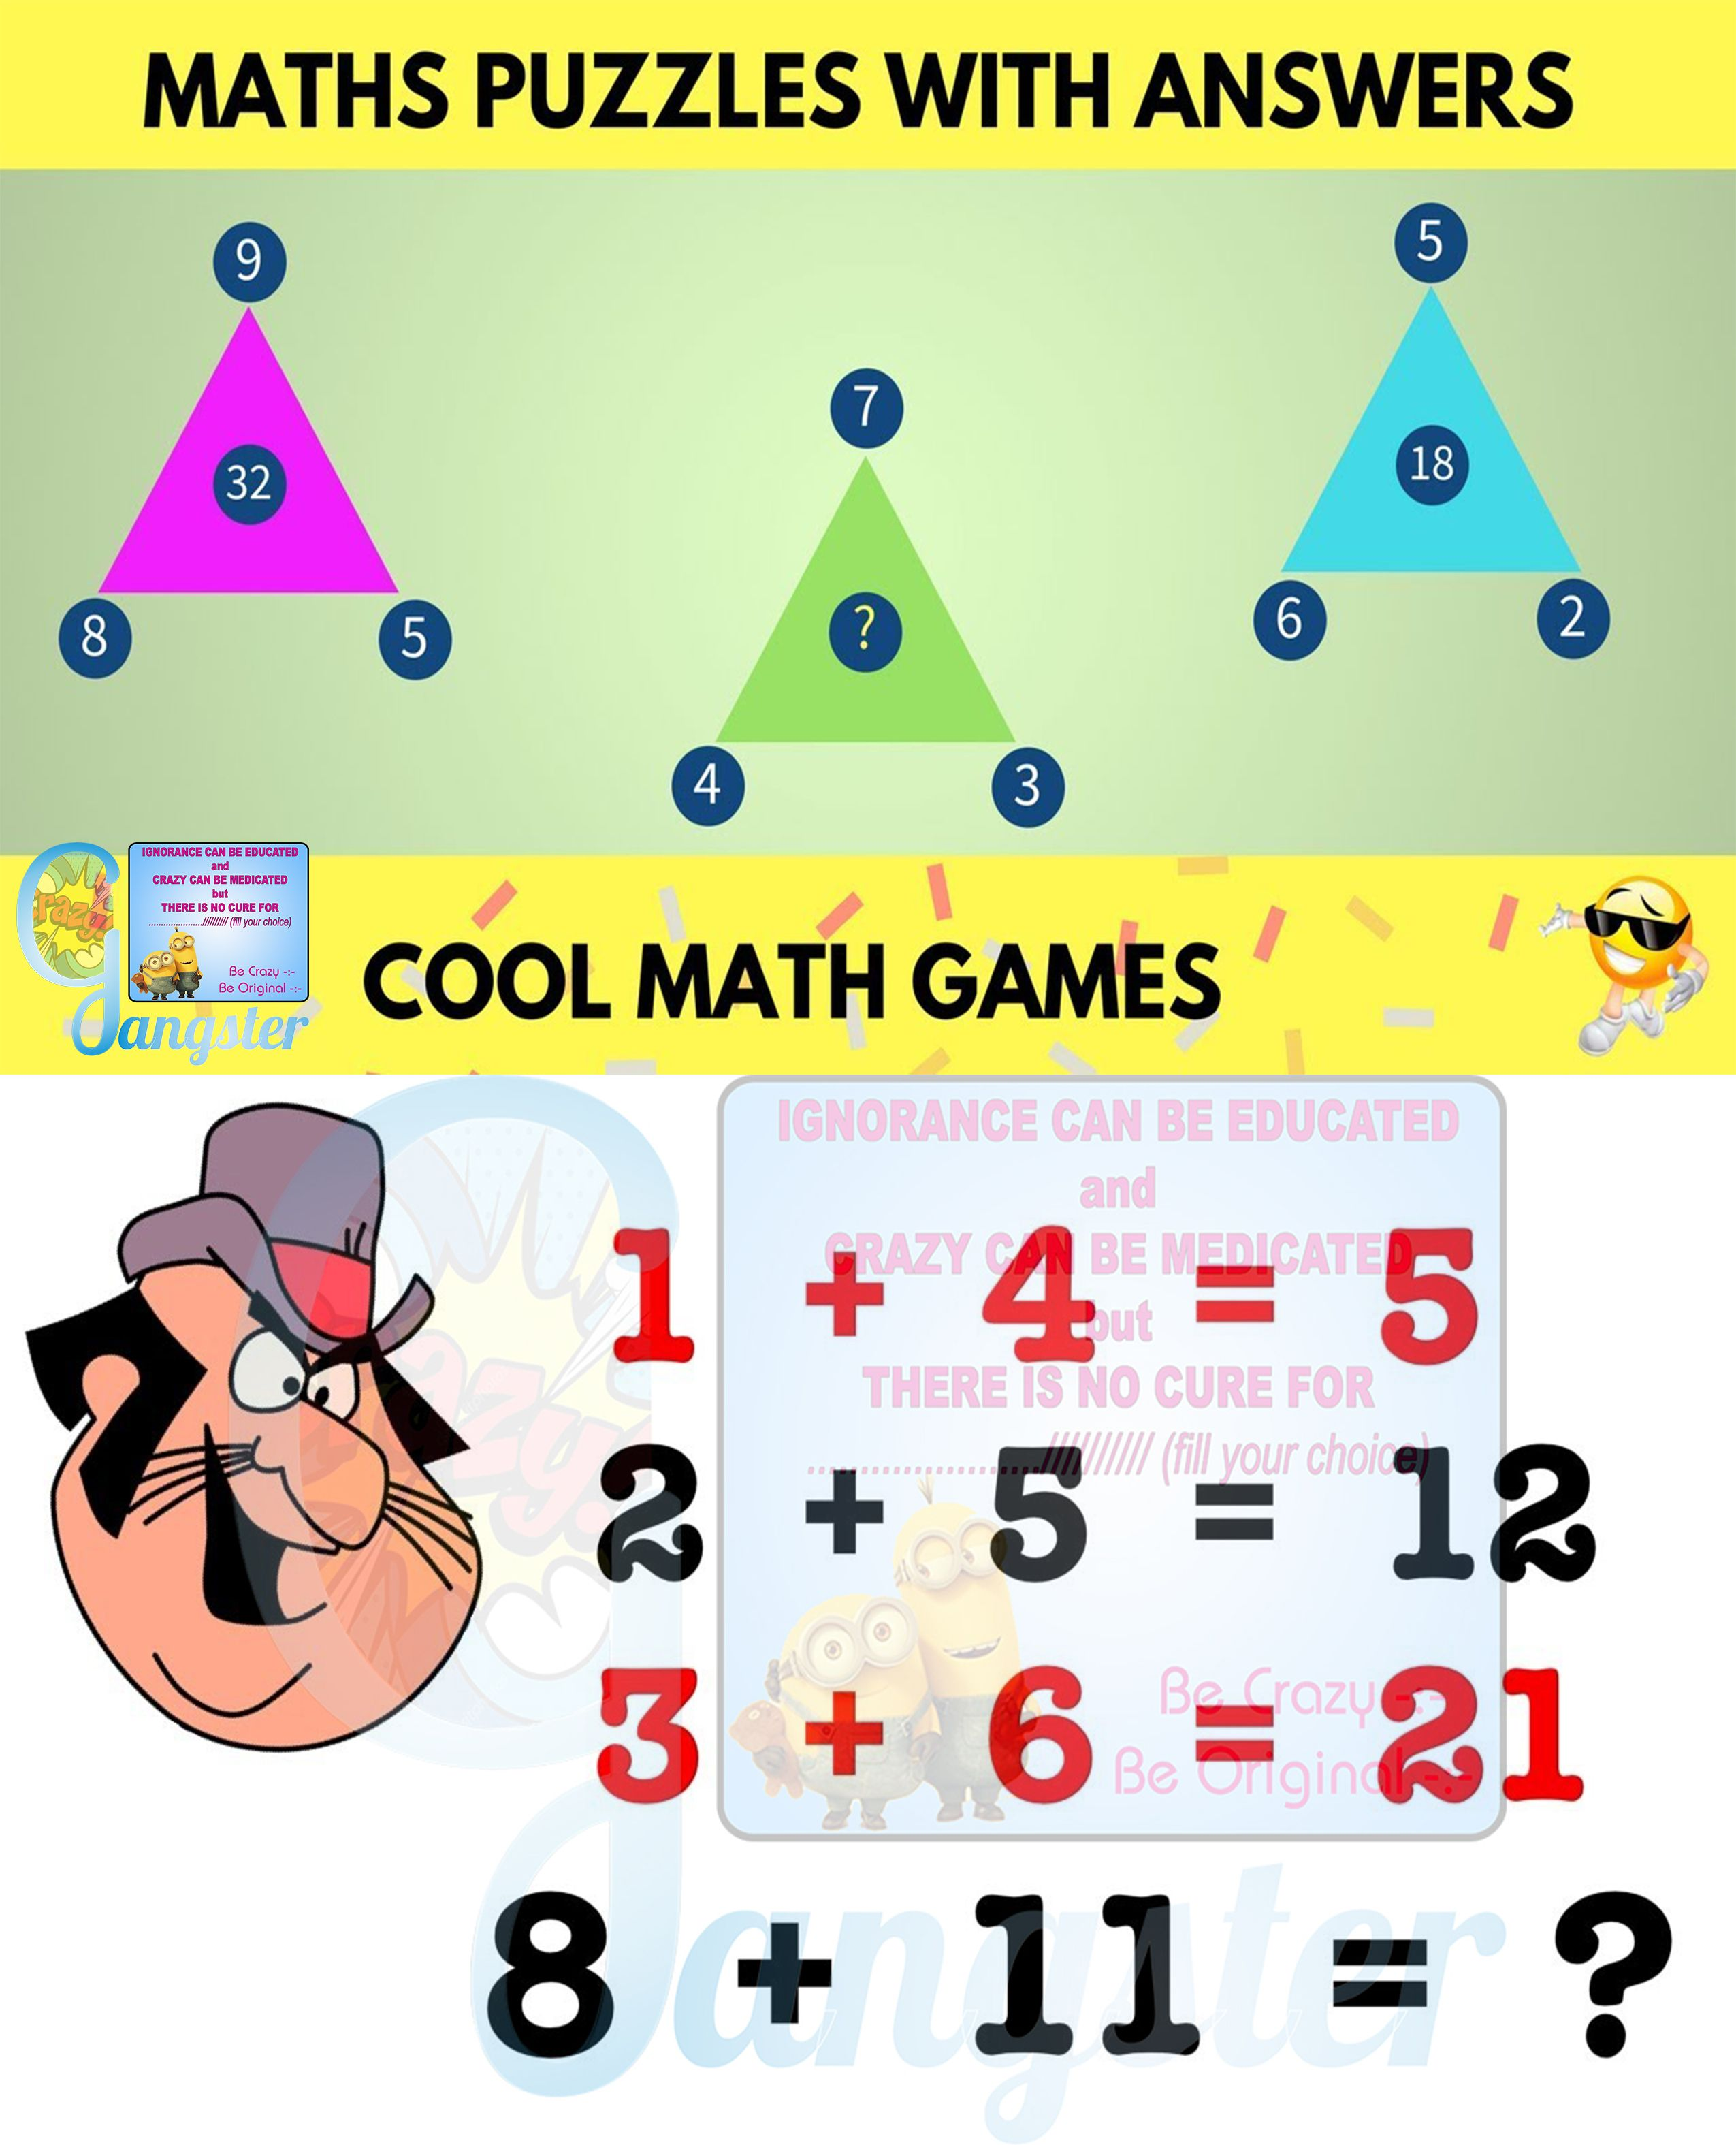 Puzzles Mathematics These Easy Math Puzzles With Answers